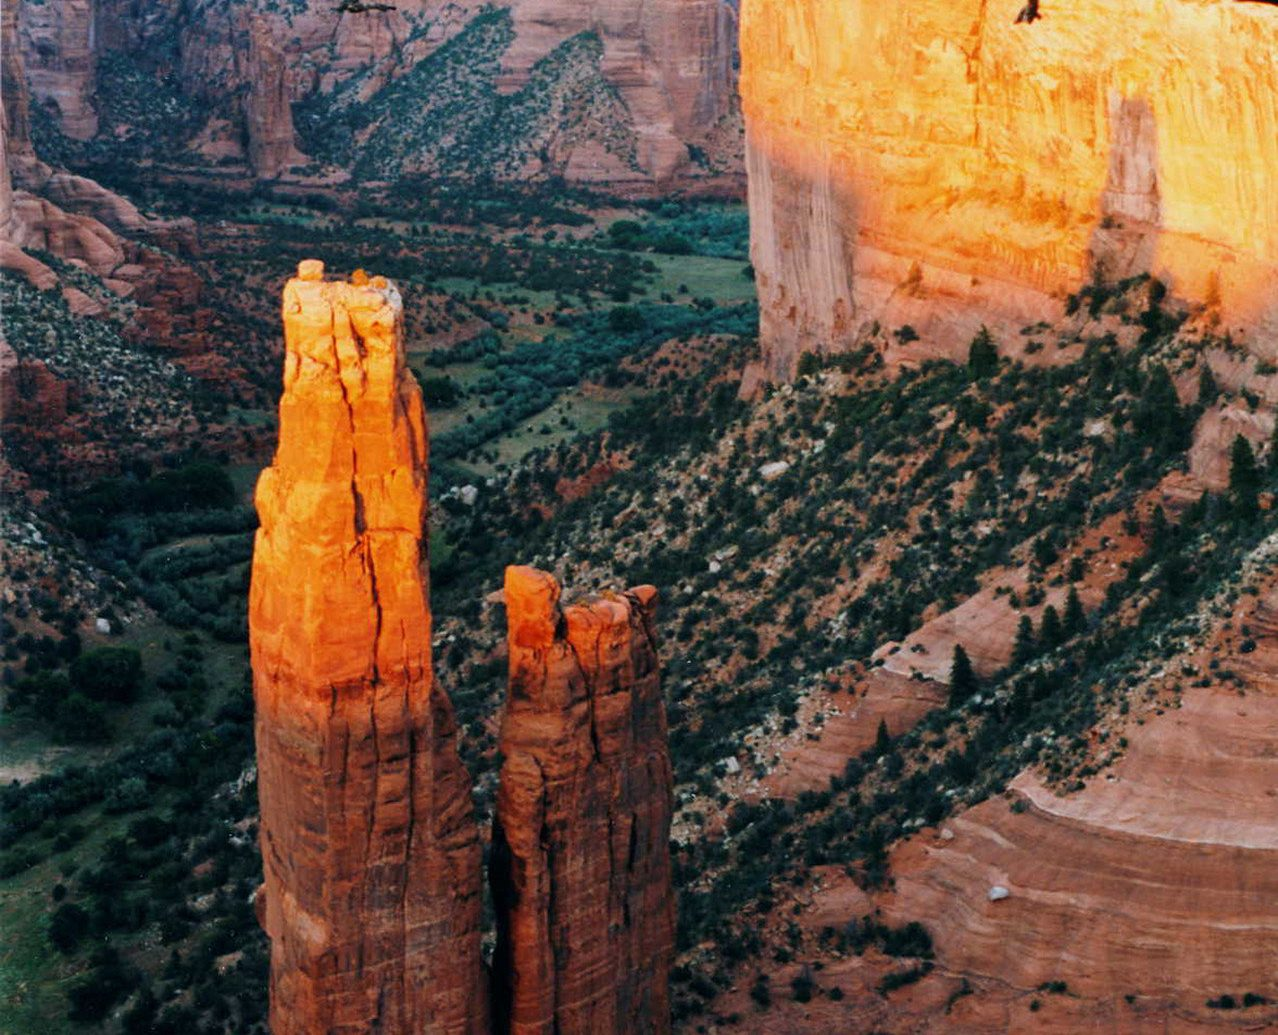 canyon Country Desert Monuments Natural wonders Nature Offbeat Scenic views tree outdoor valley rock wall season arch ancient history wood temple carving geology formation snow autumn orange